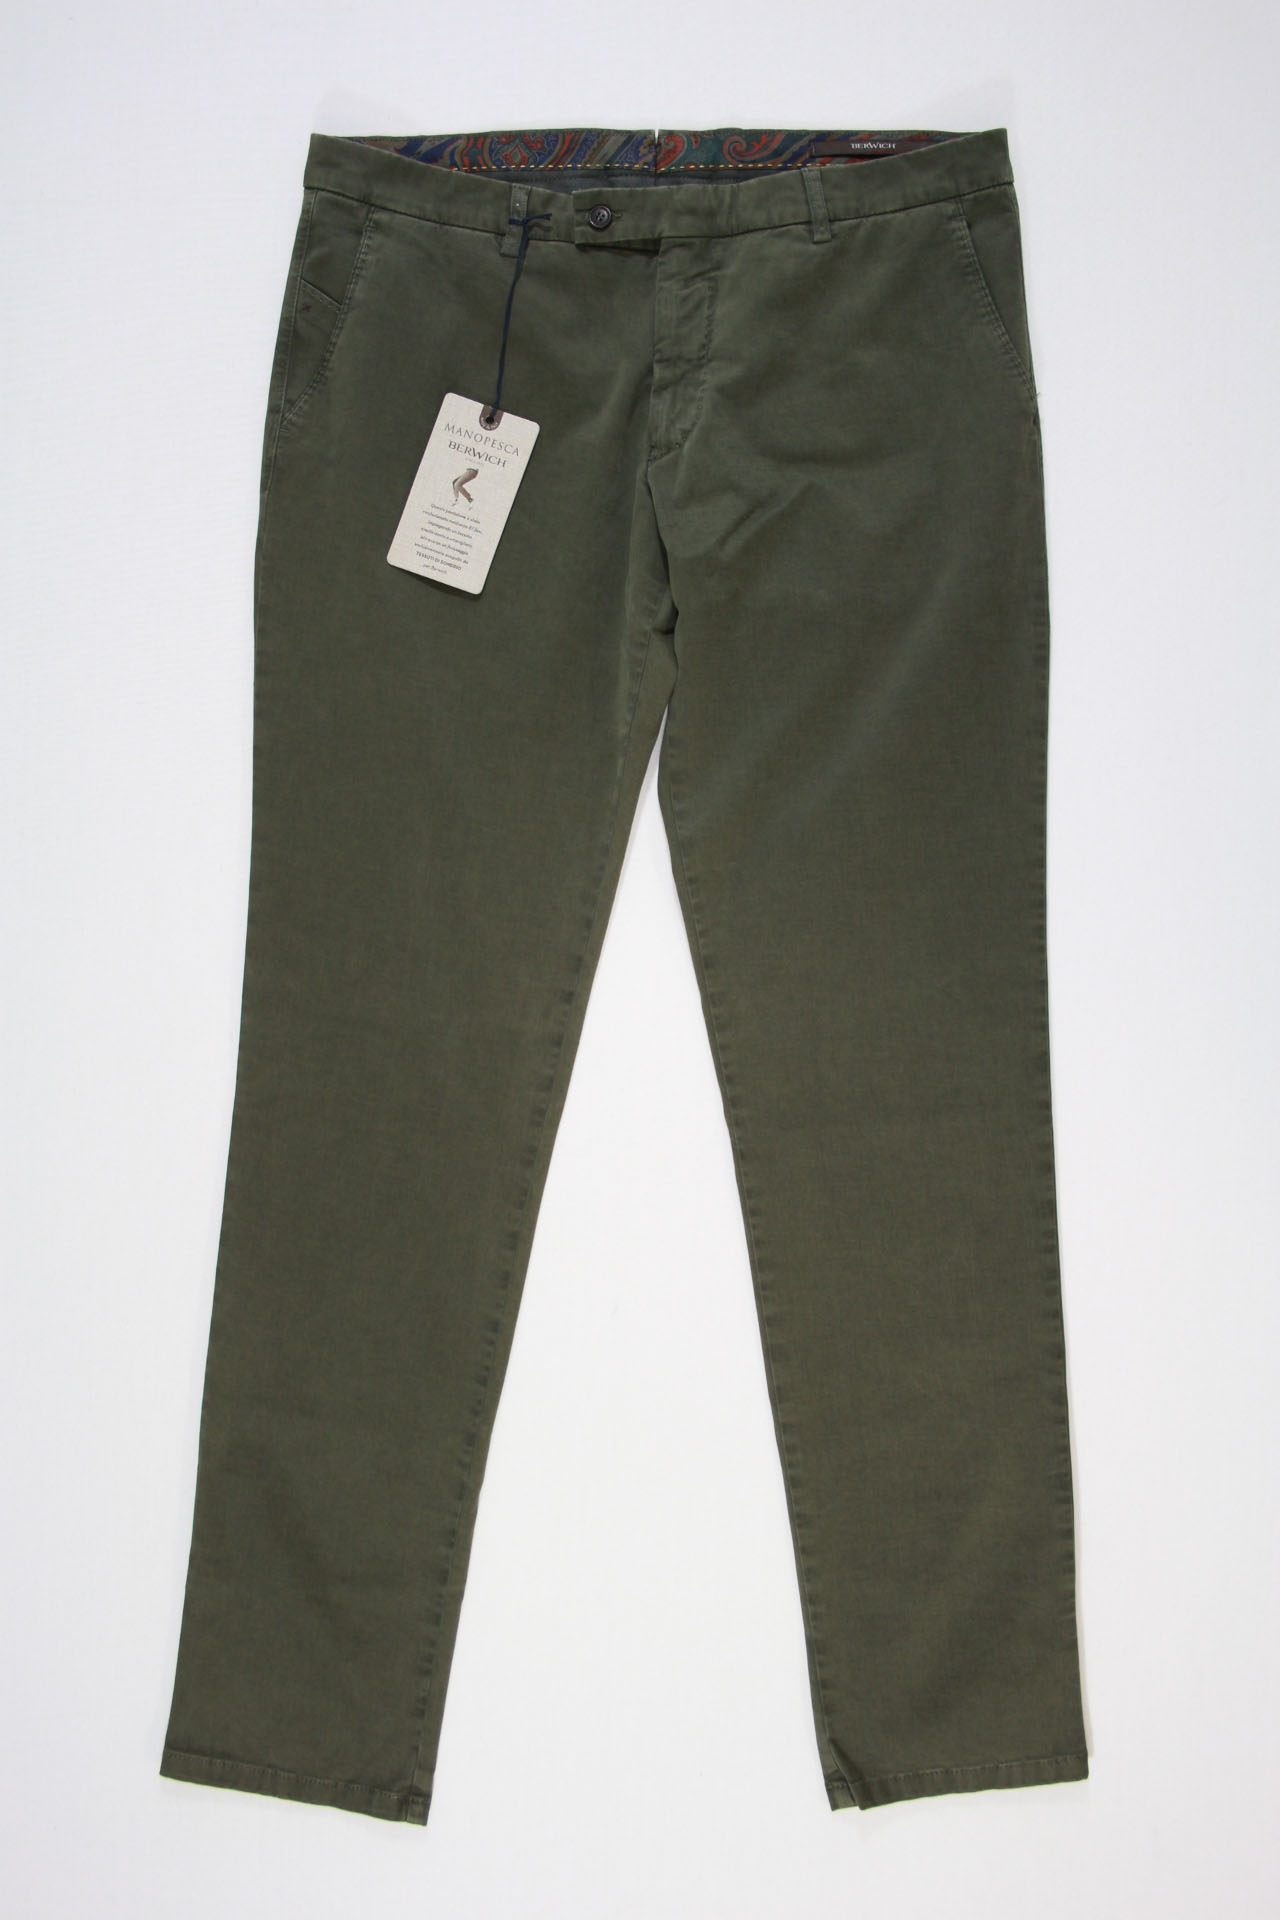 Berwich Chino Groen Xgab Army Slim Fit